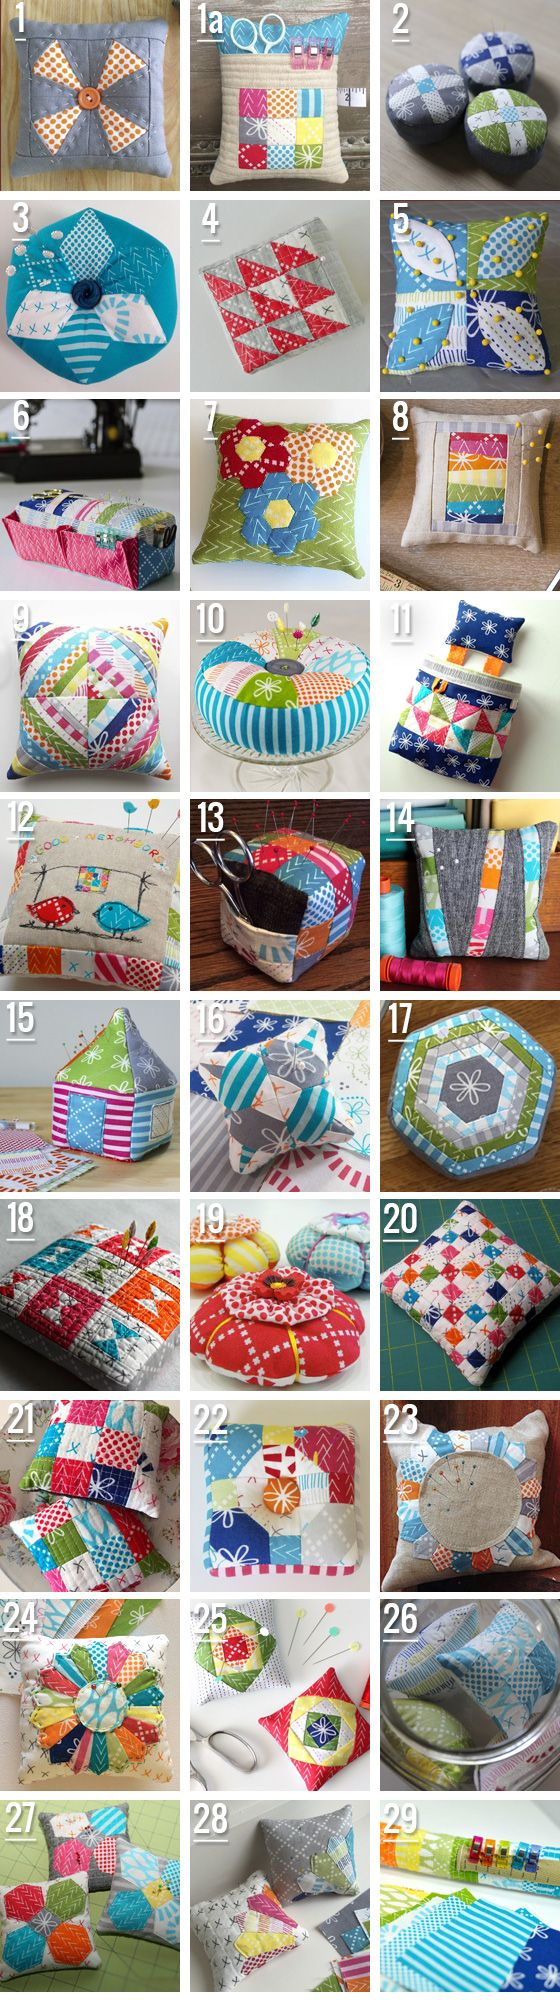 What an awesome pincushion party! Thanks to all who participated! Go check out the Good Neighbors collection and try your own cushion!